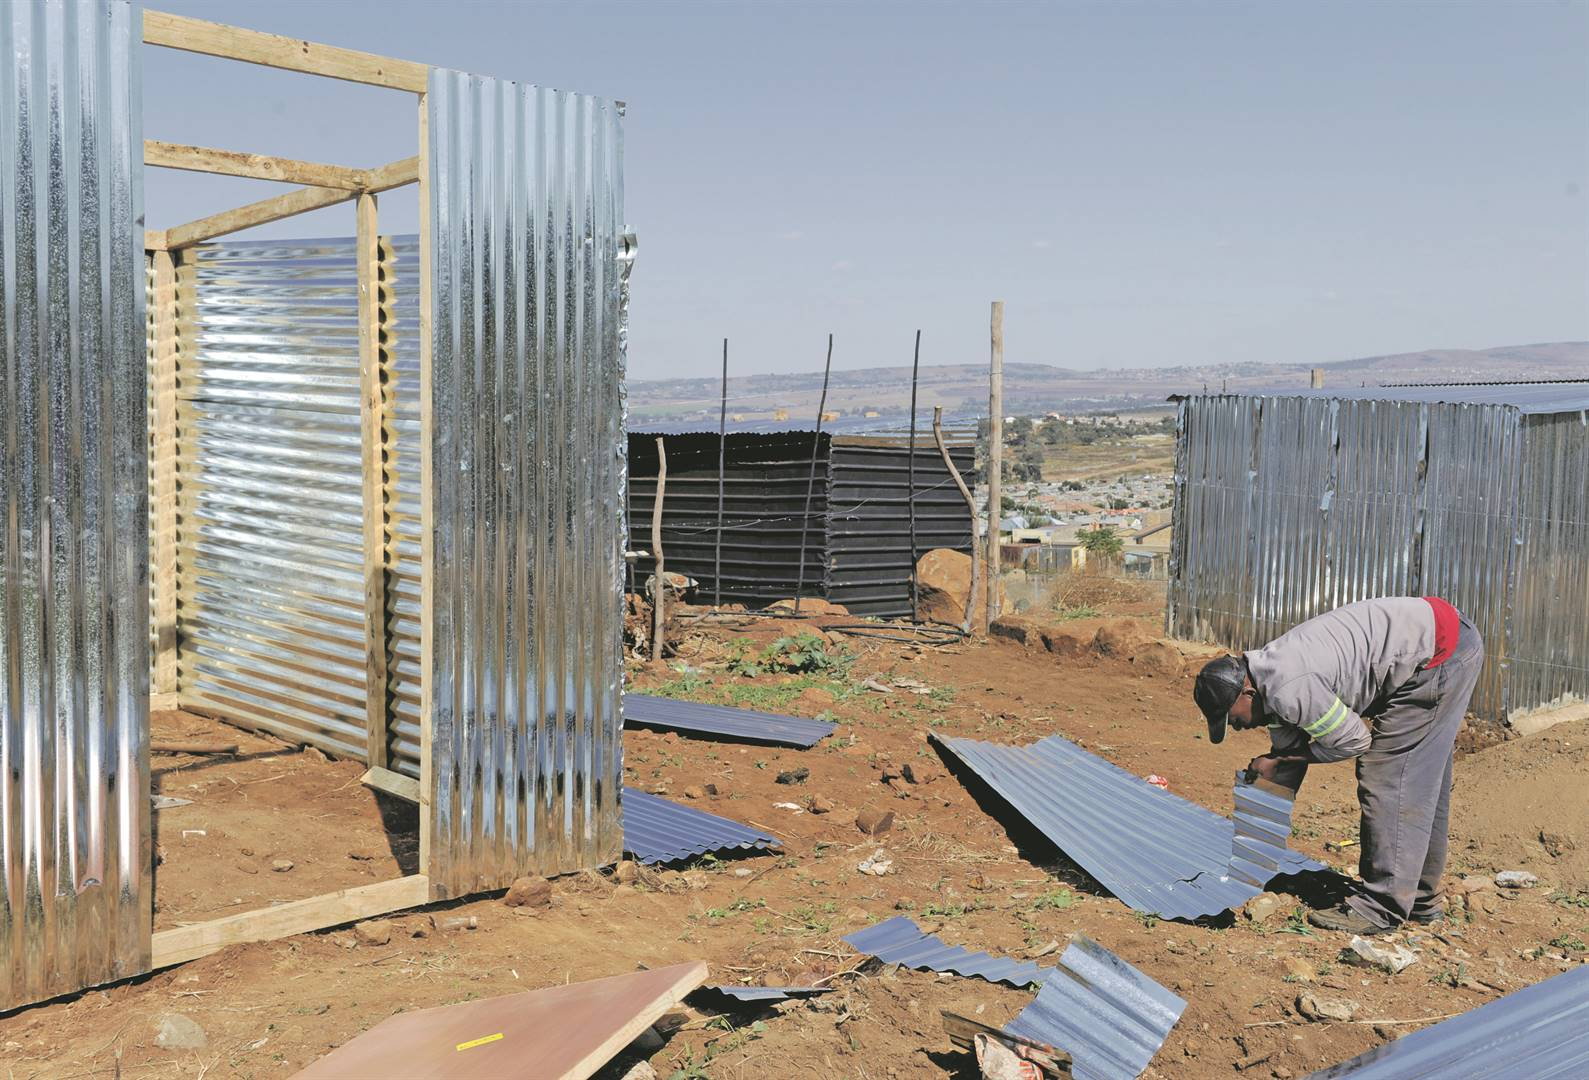 Freddy Mohale has been busy building shacks for customers in an informal settlement in Freedom Park near Naturena, south of Johannesburg.  Photo: Tebogo Letsie